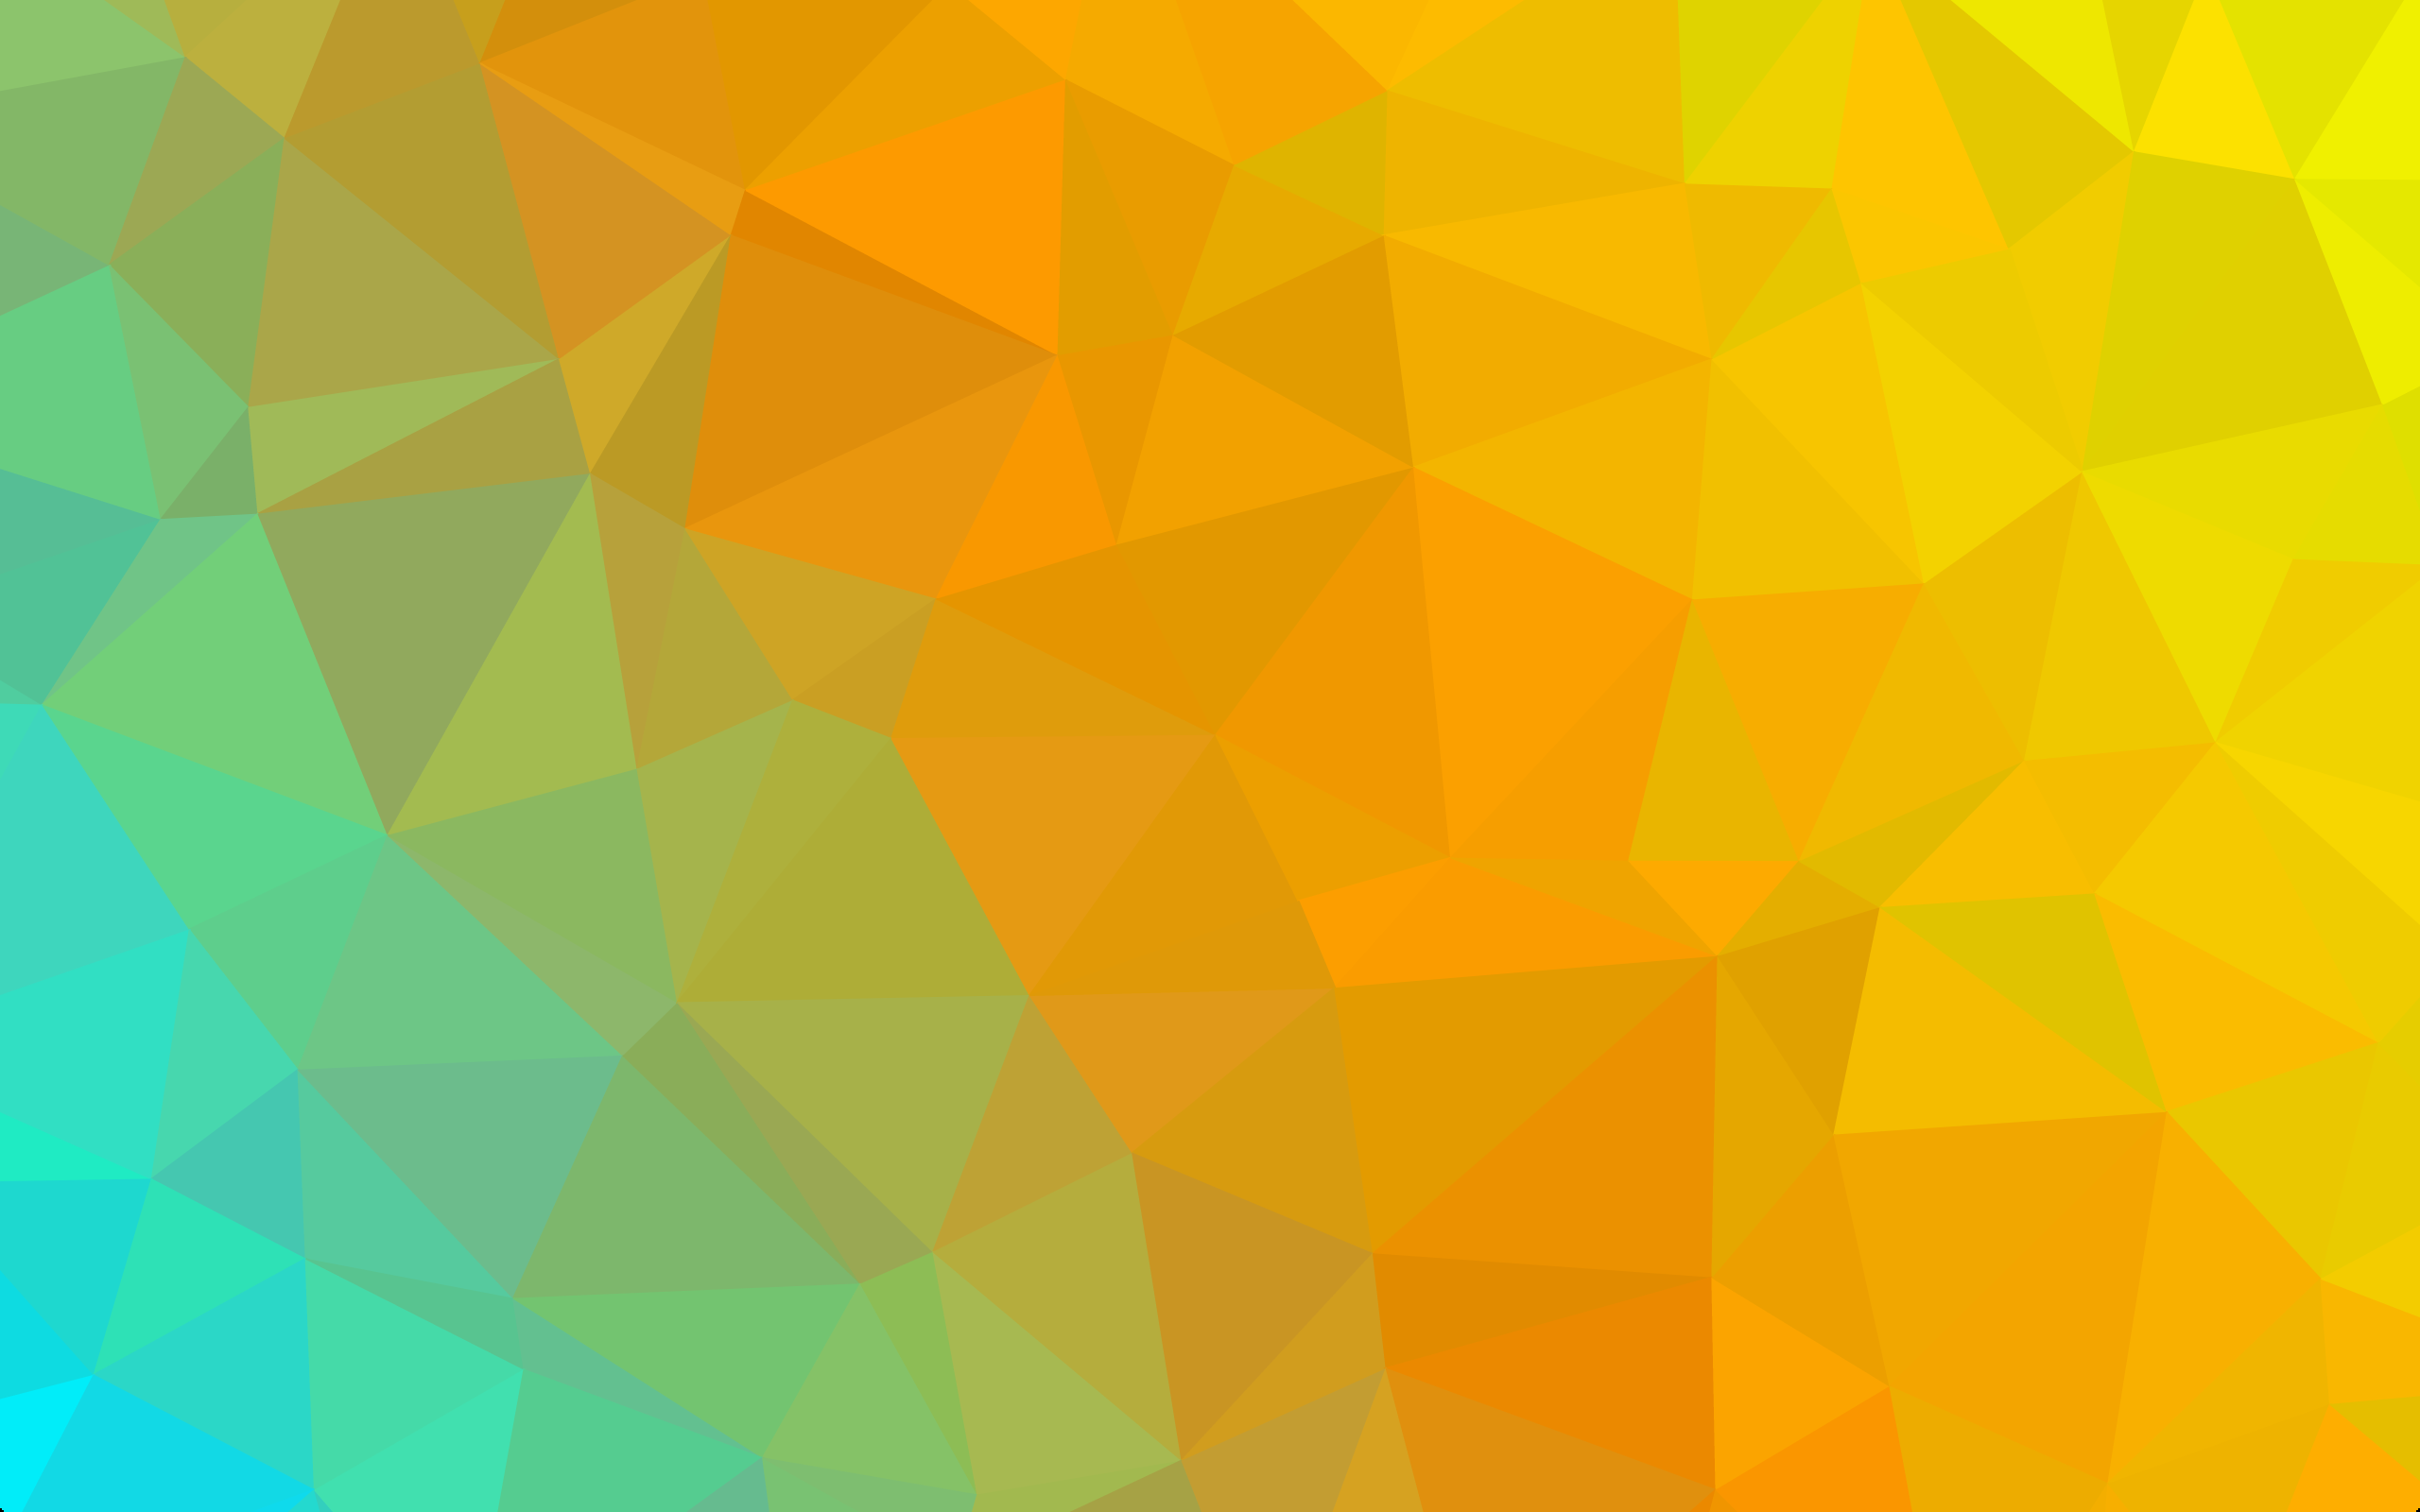 Amazing 27269477 Polygon Wallpapers | 2560x1600 px